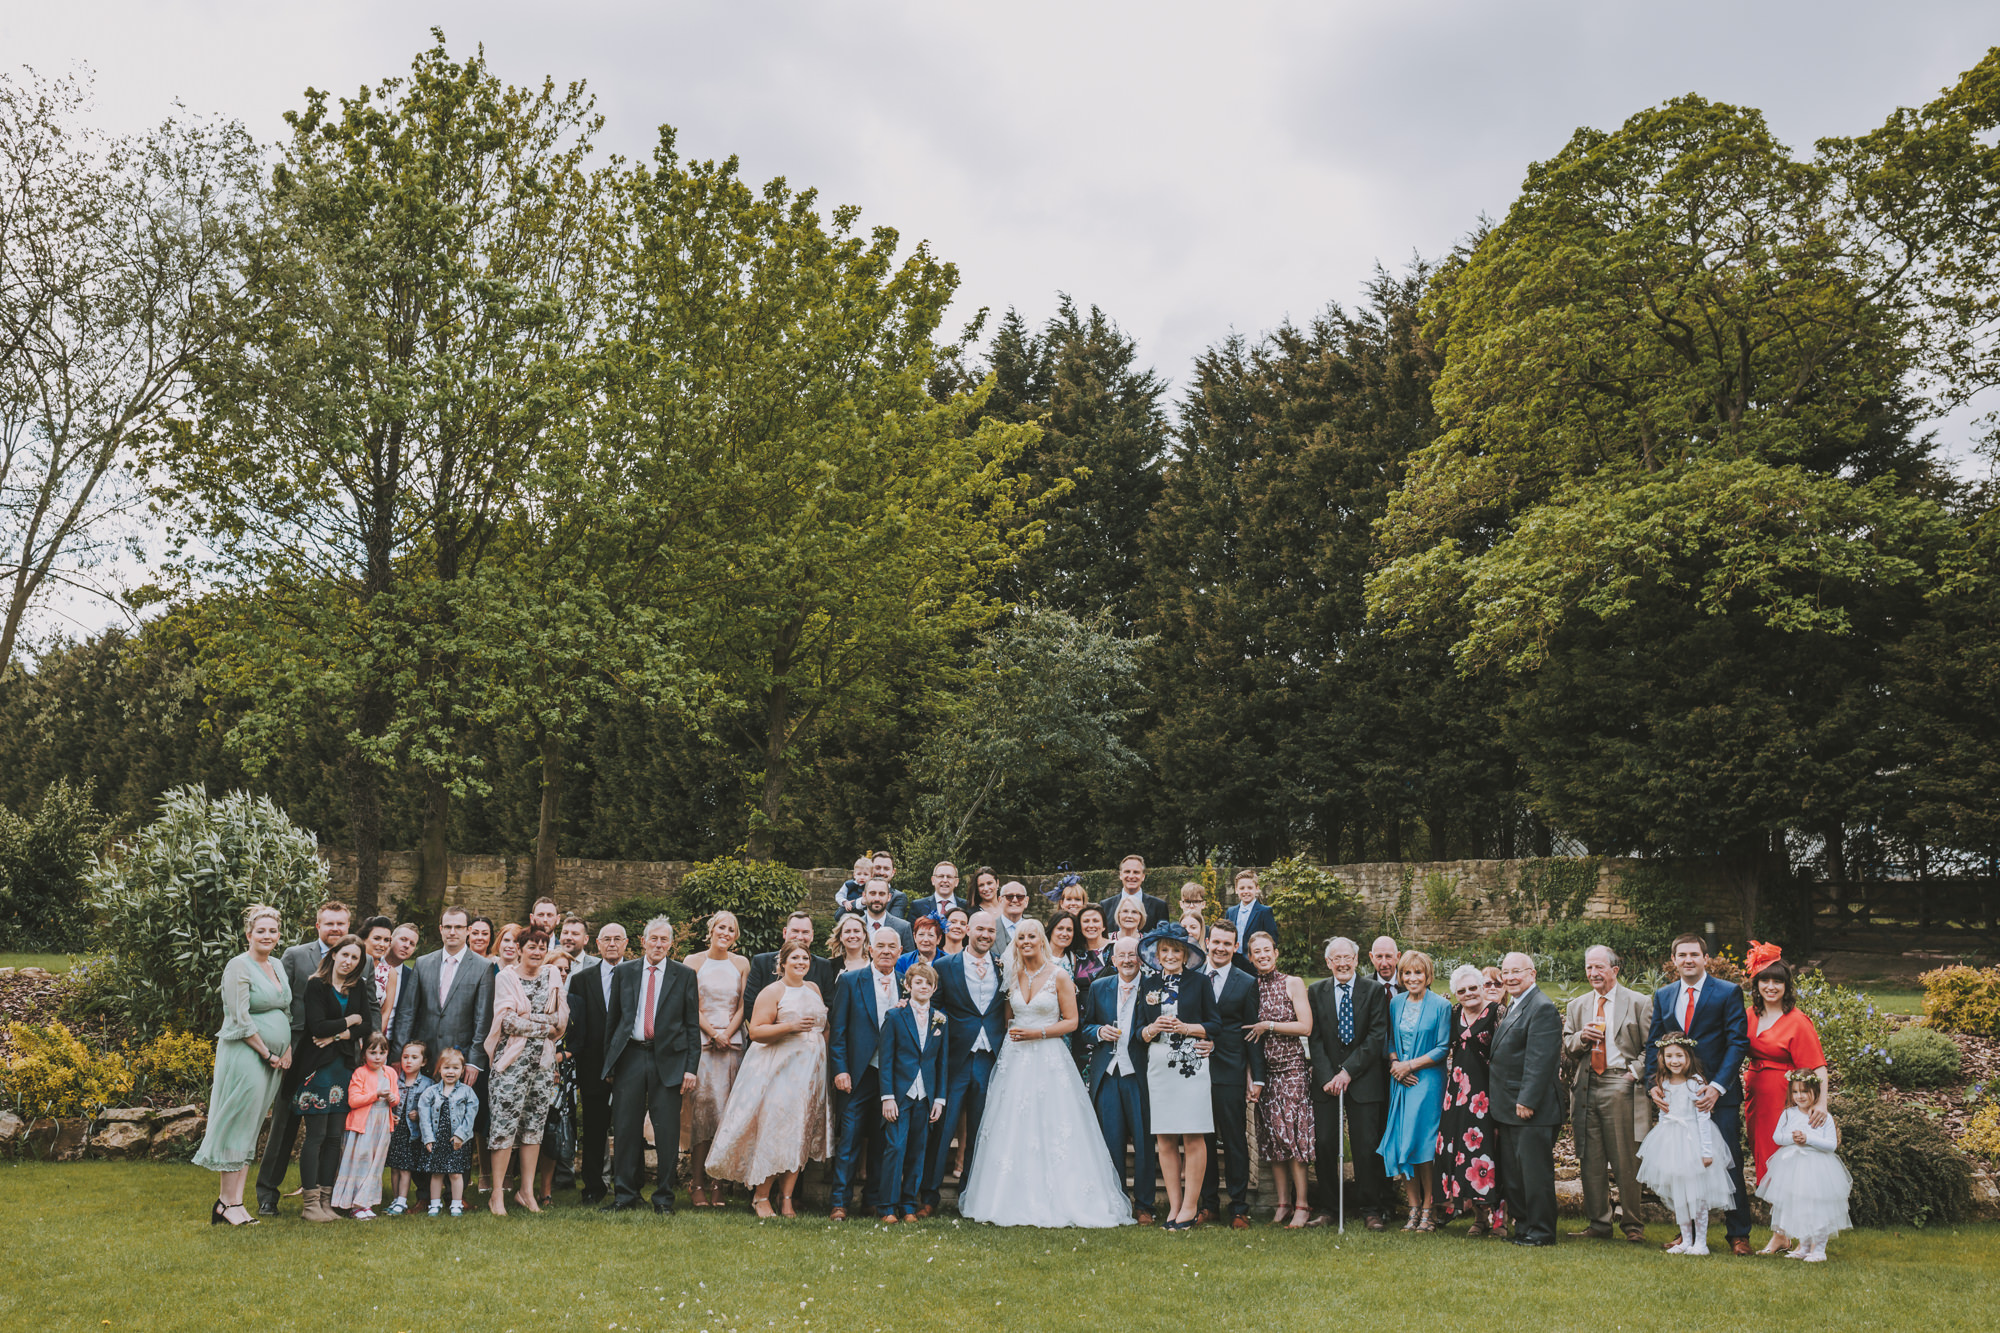 hellaby hall wedding photographers in rotherham, yorkshire-44.jpg